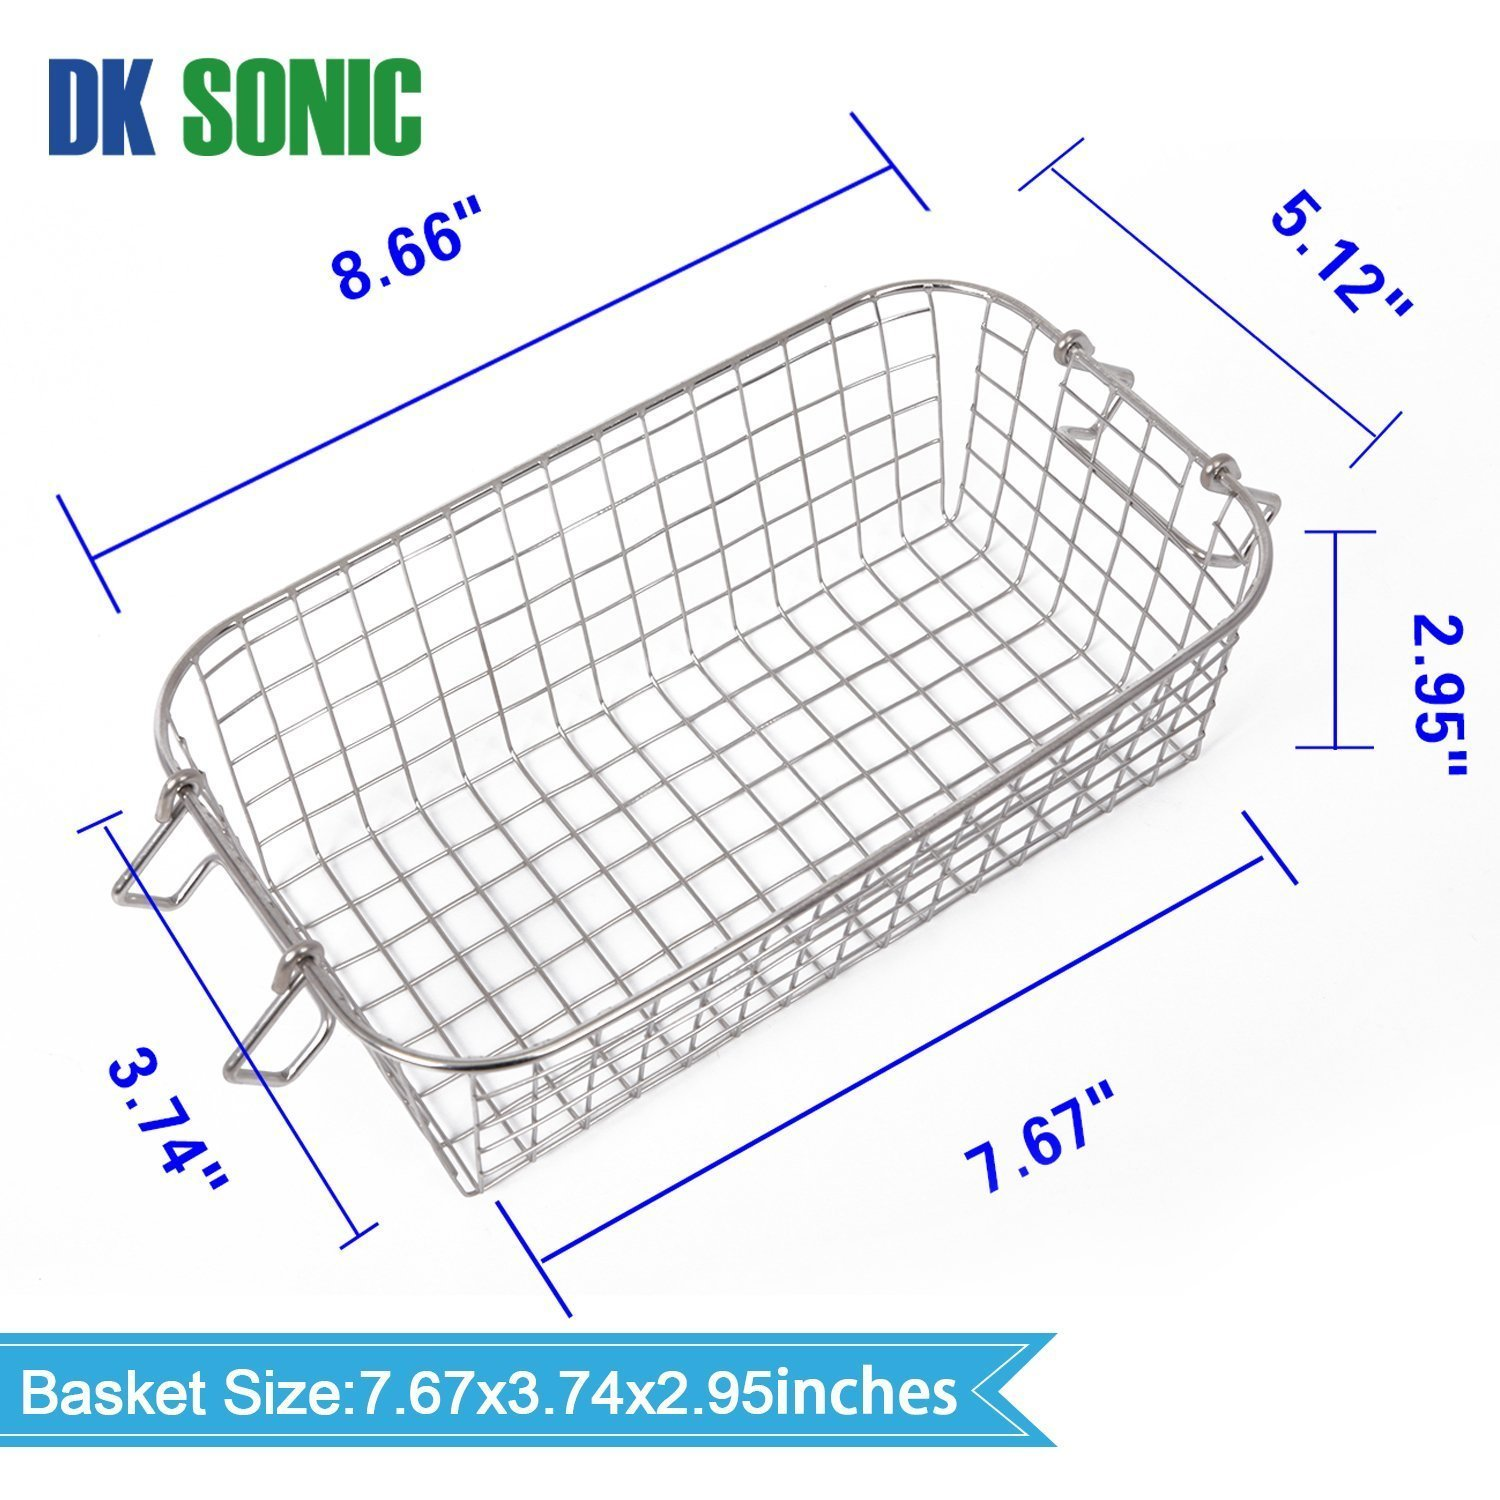 Commercial Ultrasonic Gun Cleaner Heated - DK SONIC 3L 120W Ultrasonic Jewelry Cleaner with Heater Basket for Parts Denture Carburetor Eyeglass Fuel Injector Record Circuit Board Dental 40KHz by DK SONIC (Image #8)